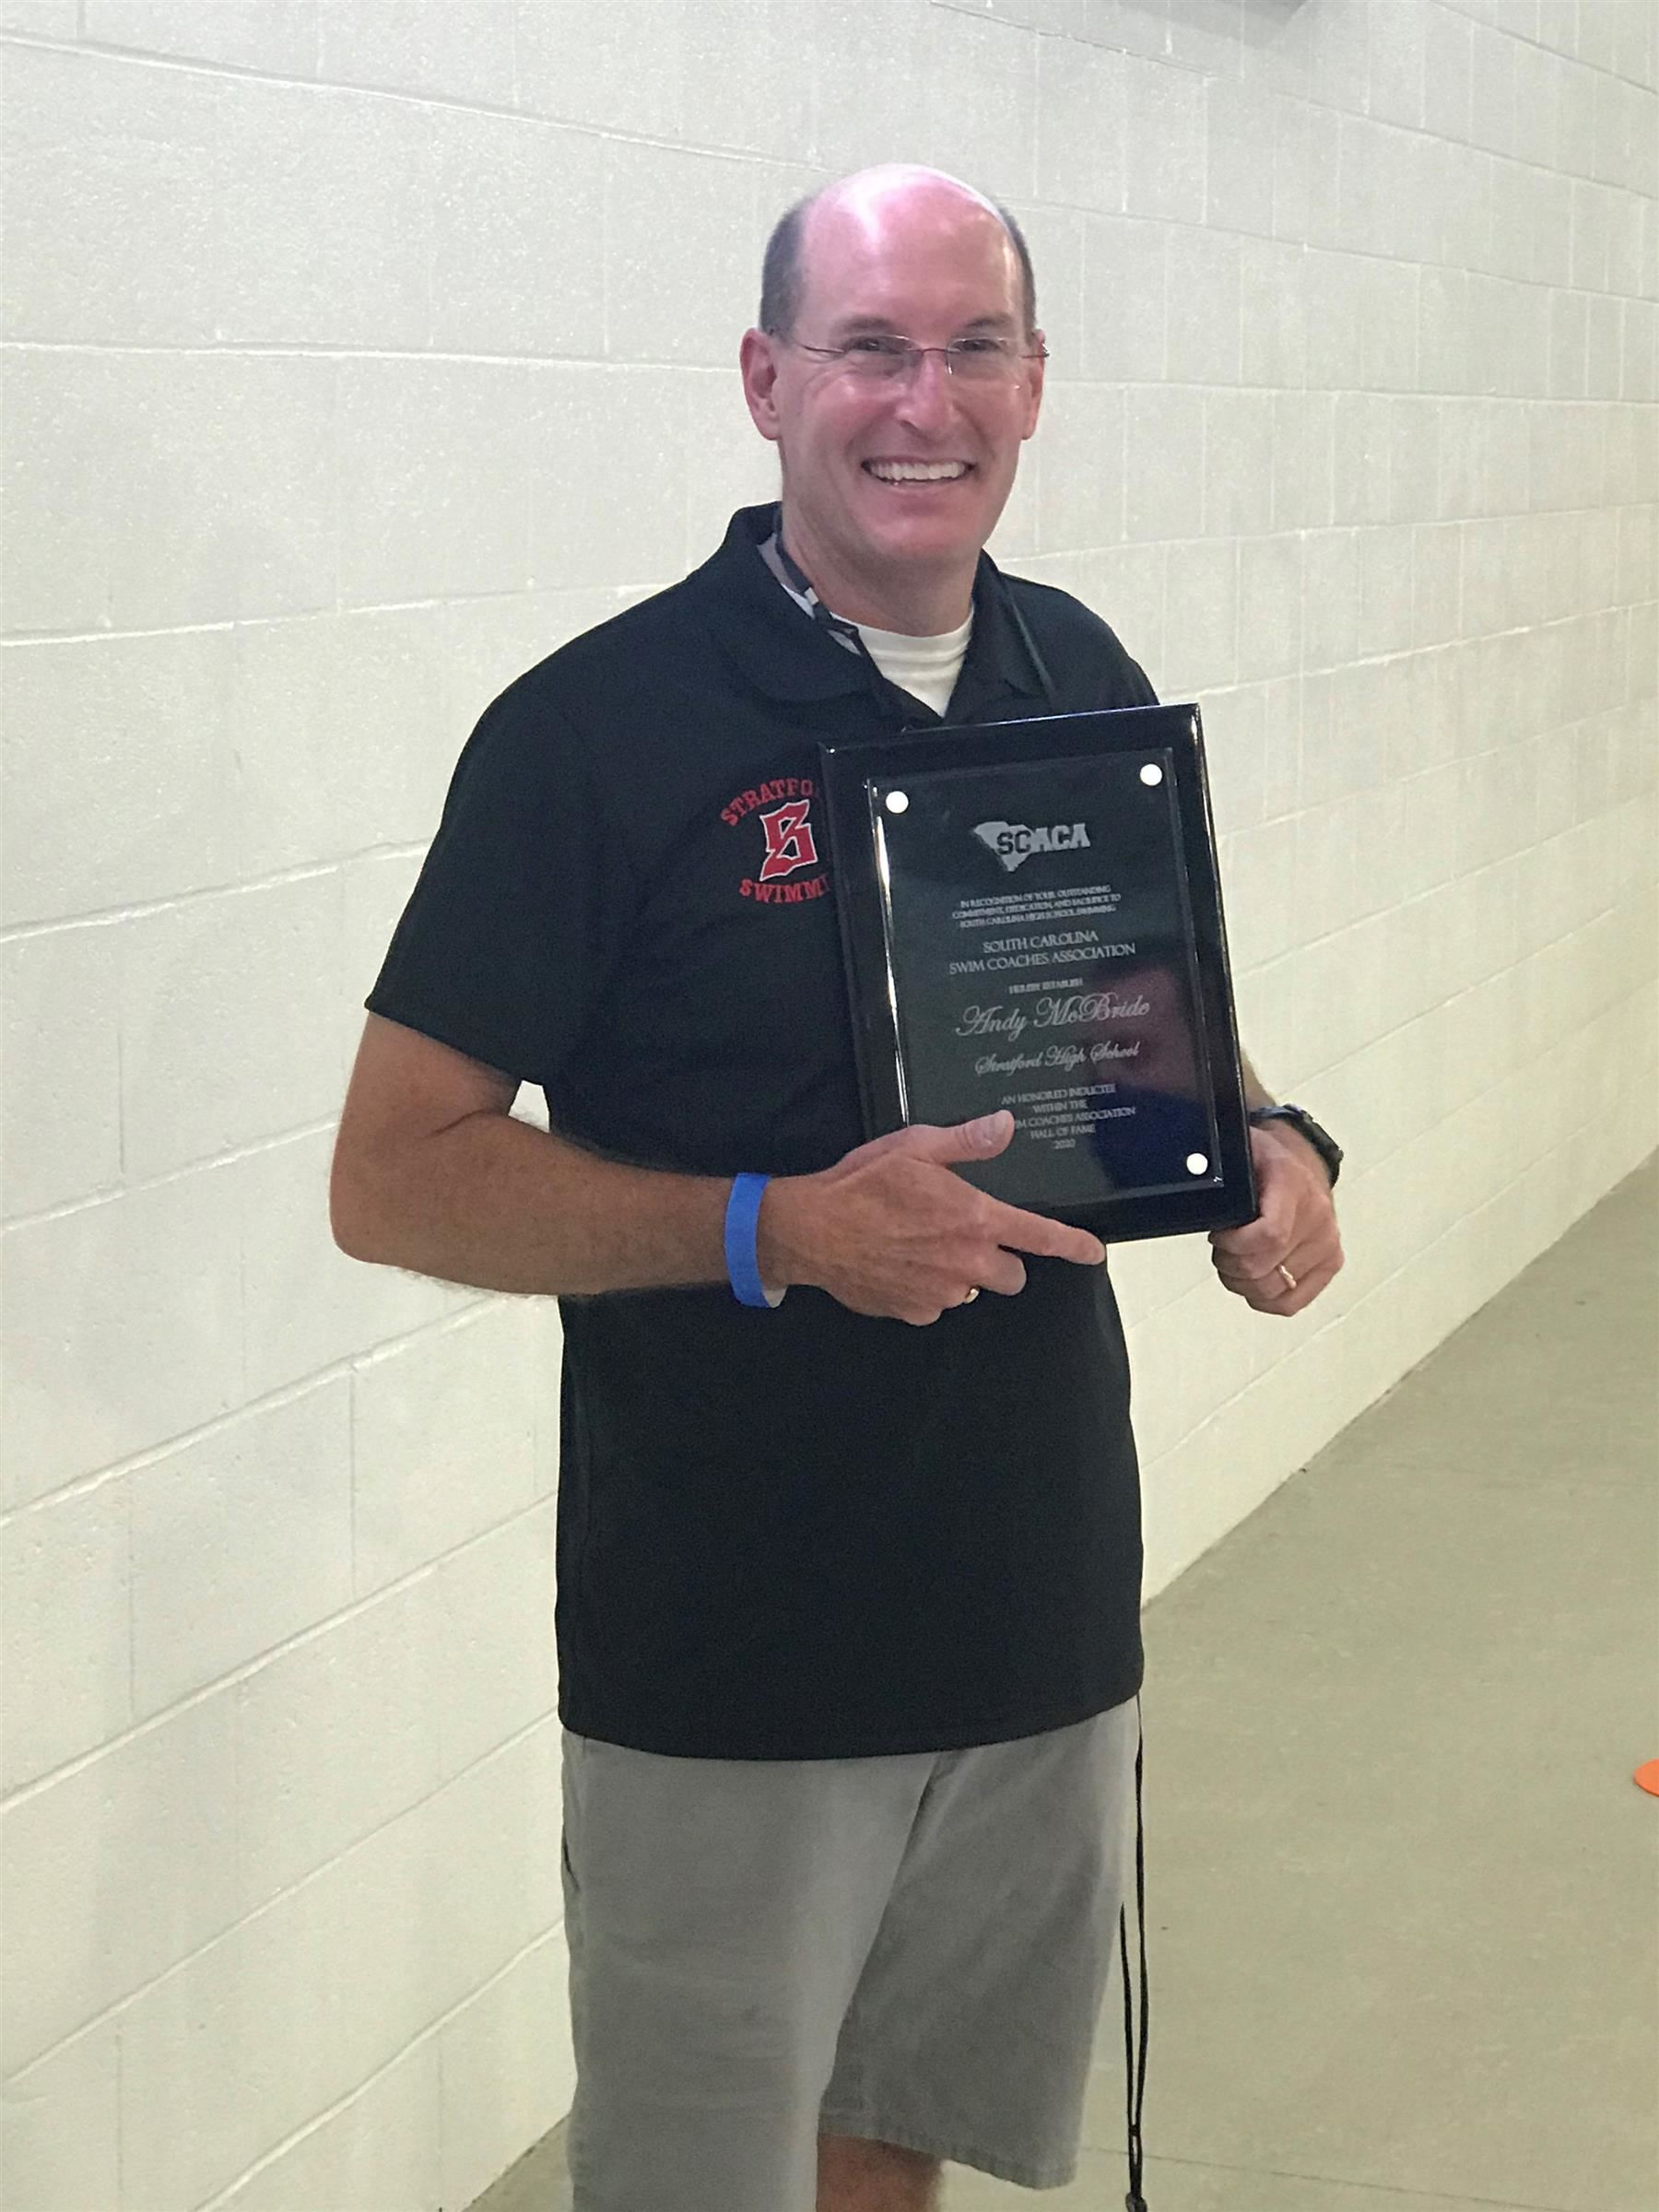 andy mcbride with award